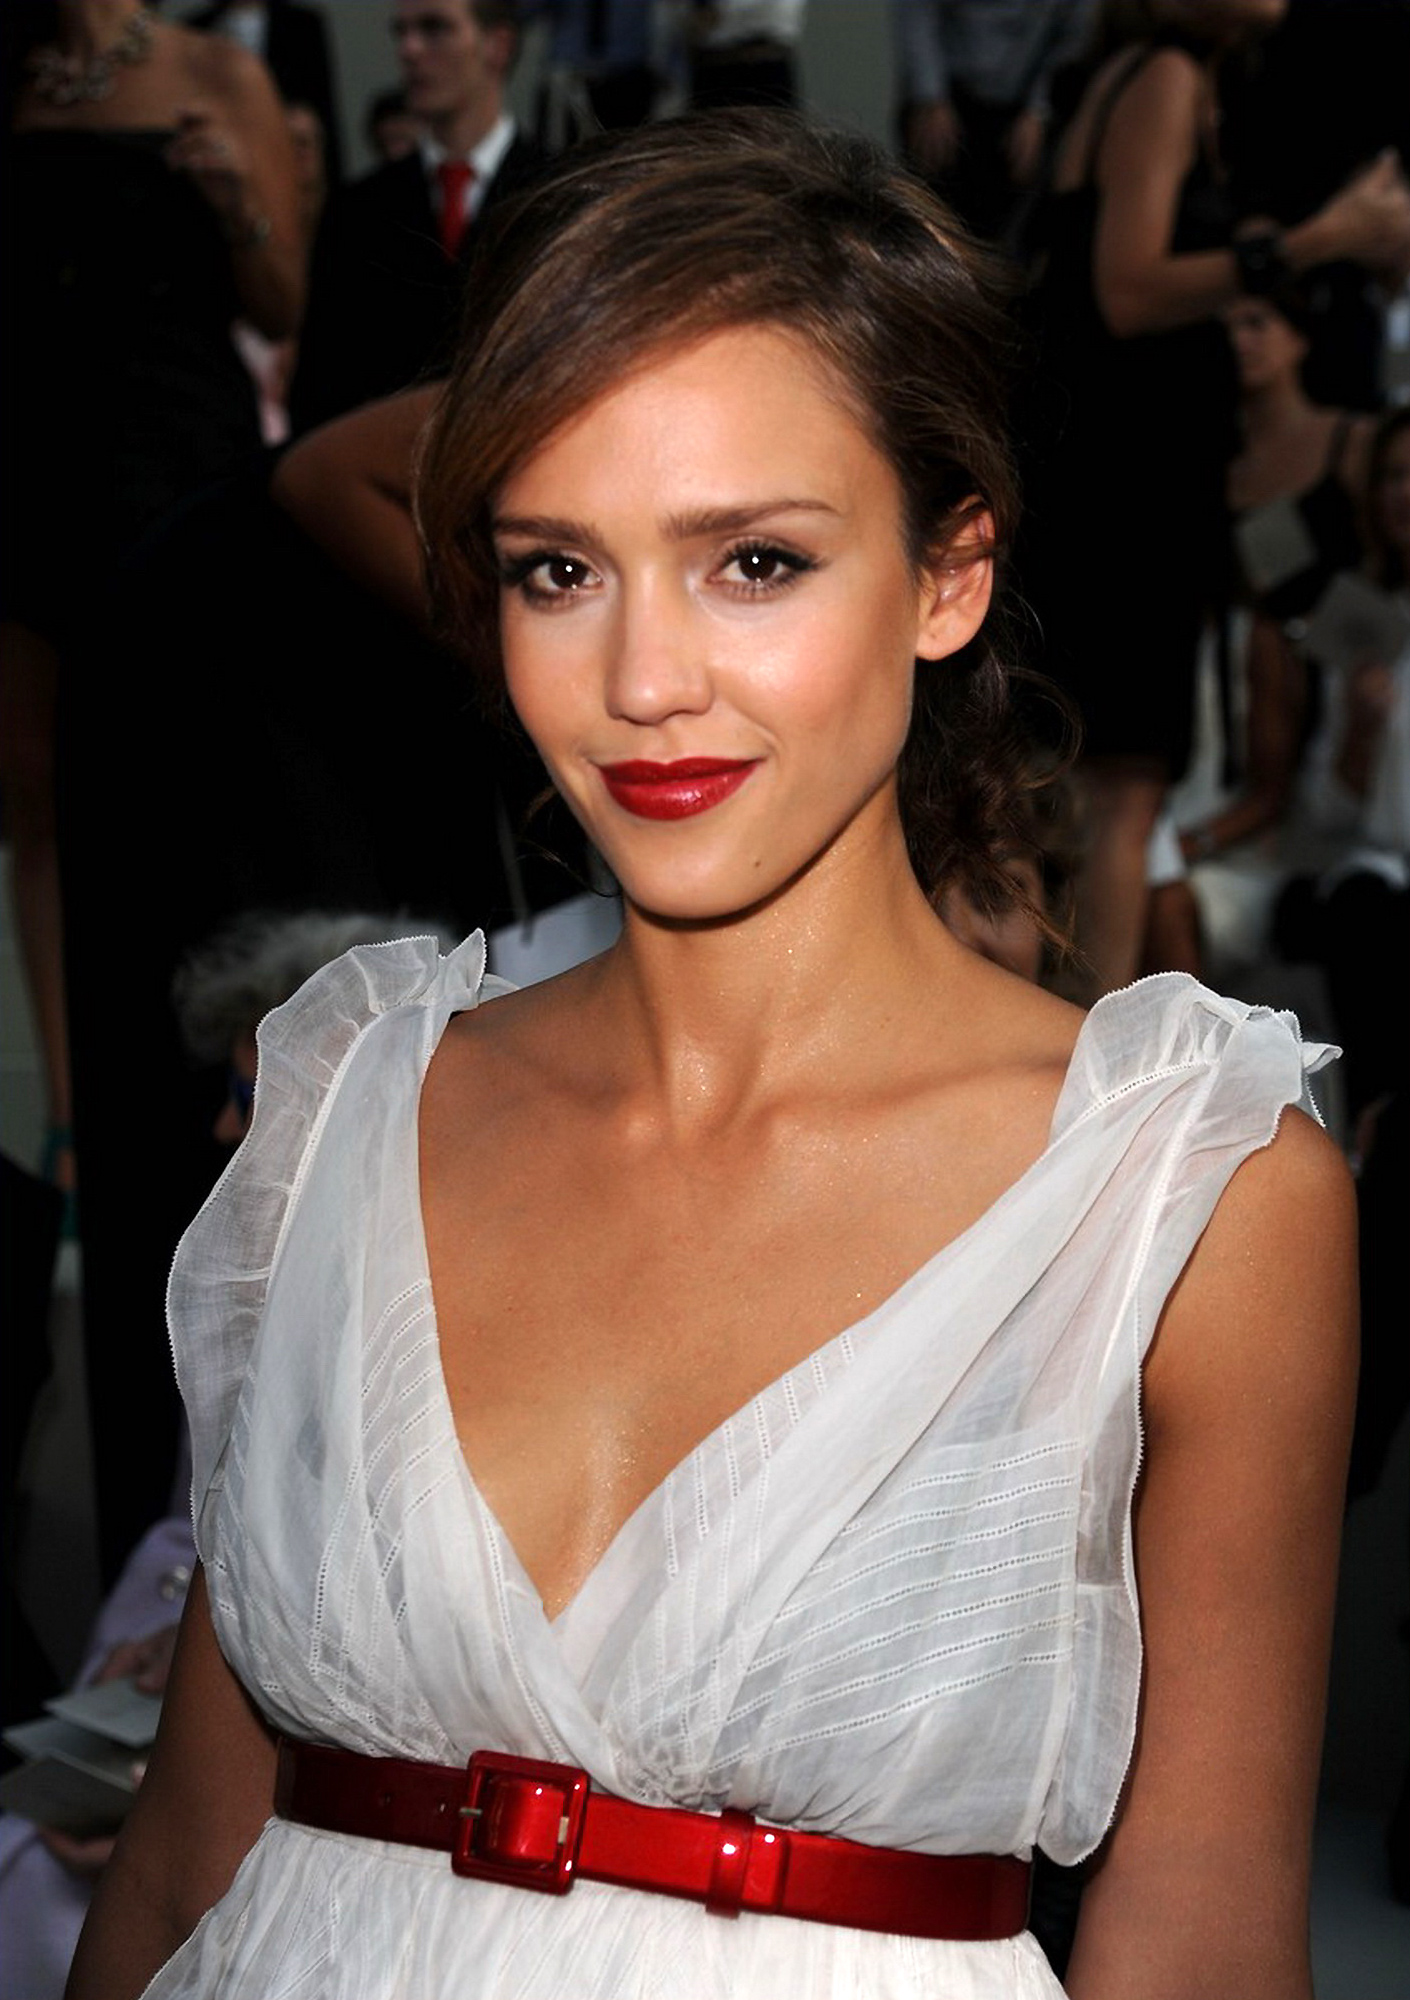 Jessica Alba's Shows Serious Cleavage